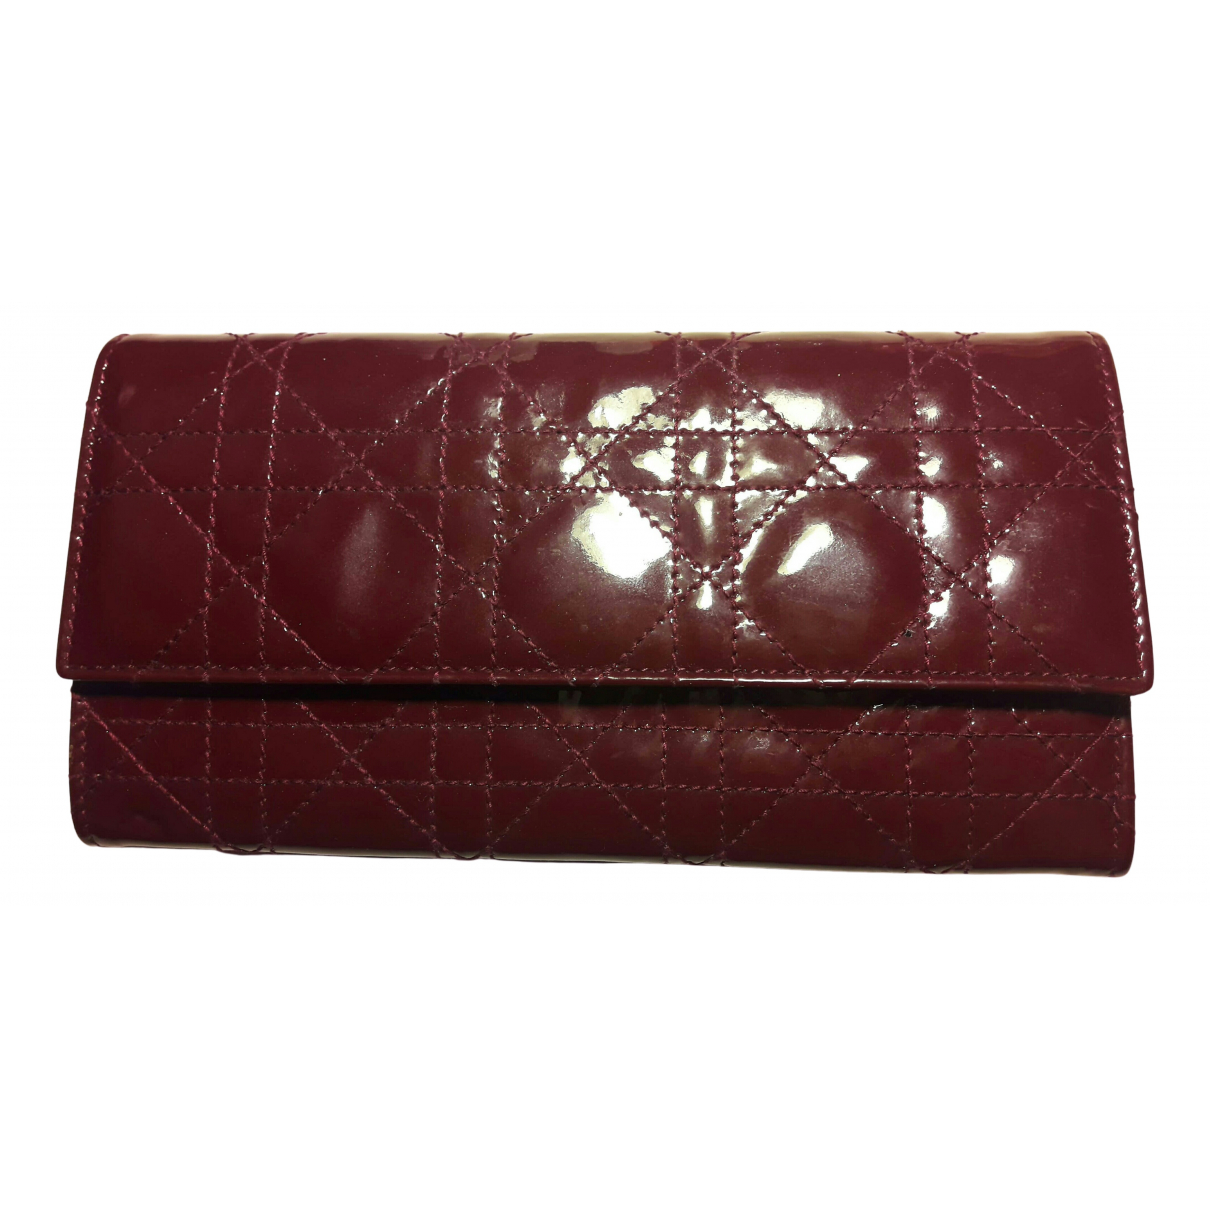 Dior N Burgundy Patent leather wallet for Women N